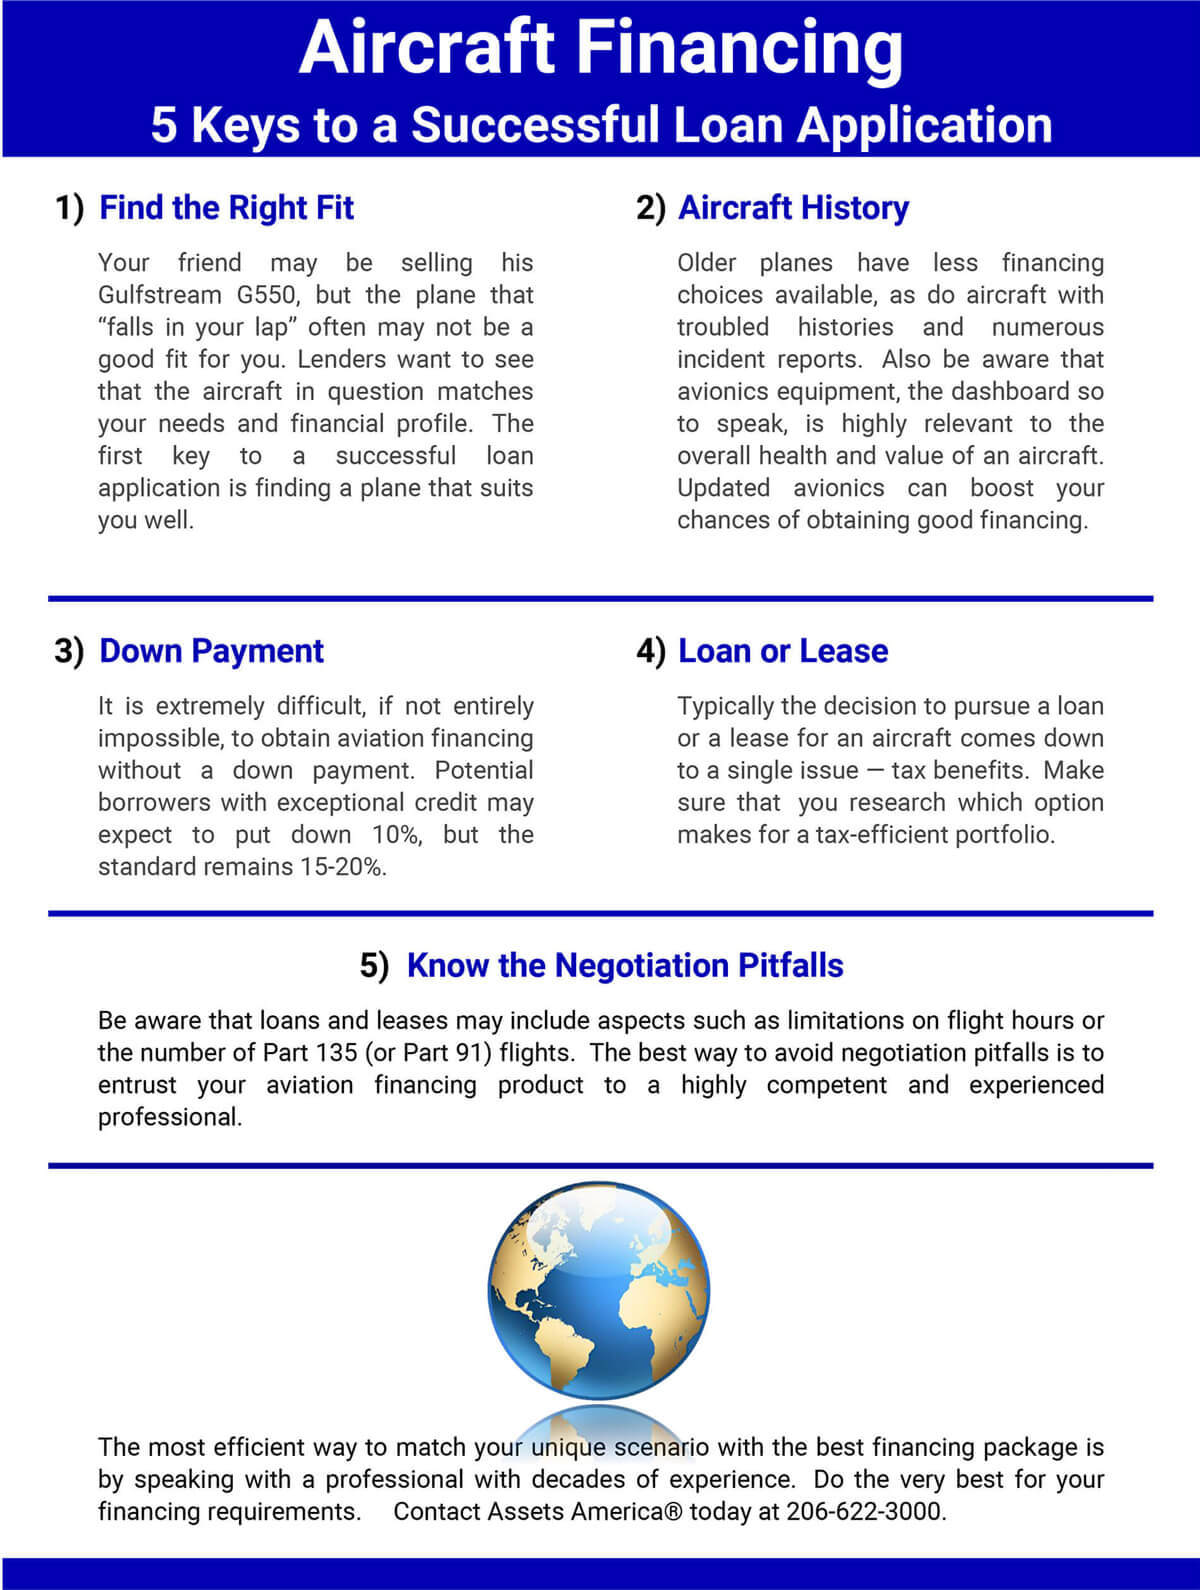 Aircraft Financing Infographic